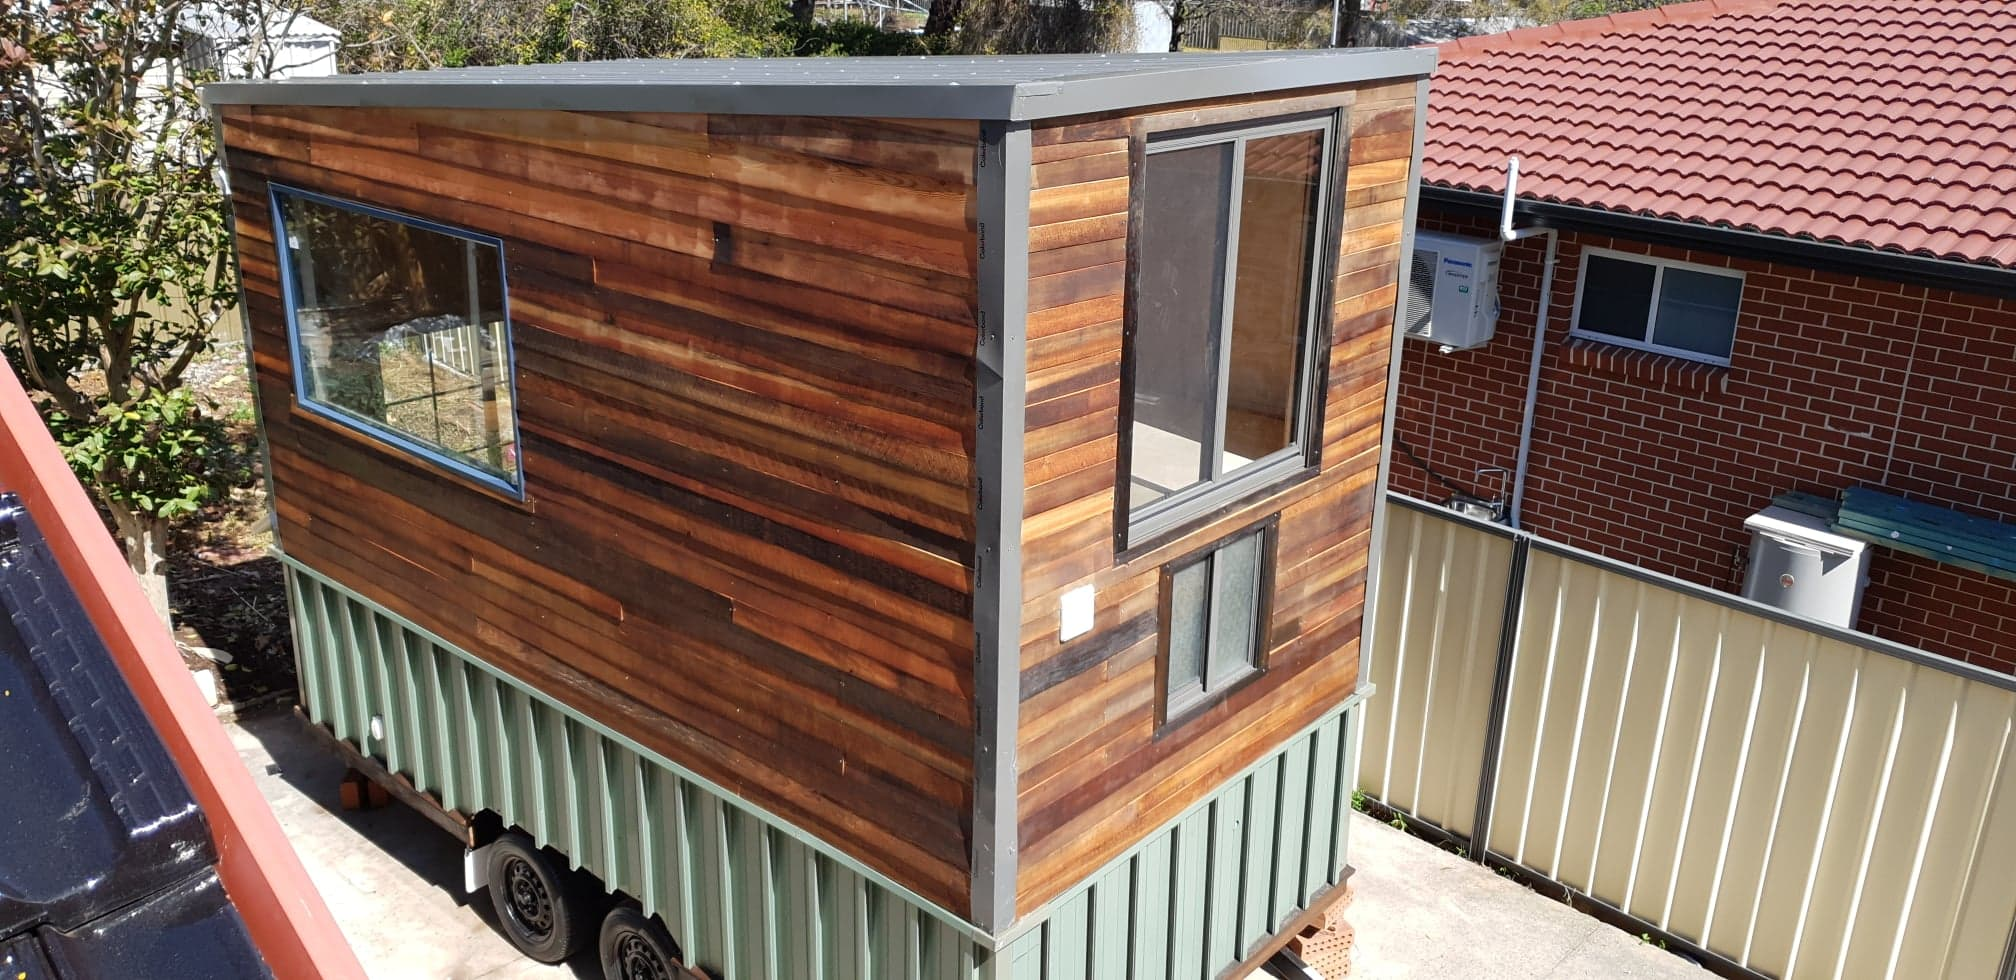 Bright and cosy tiny house for sale!